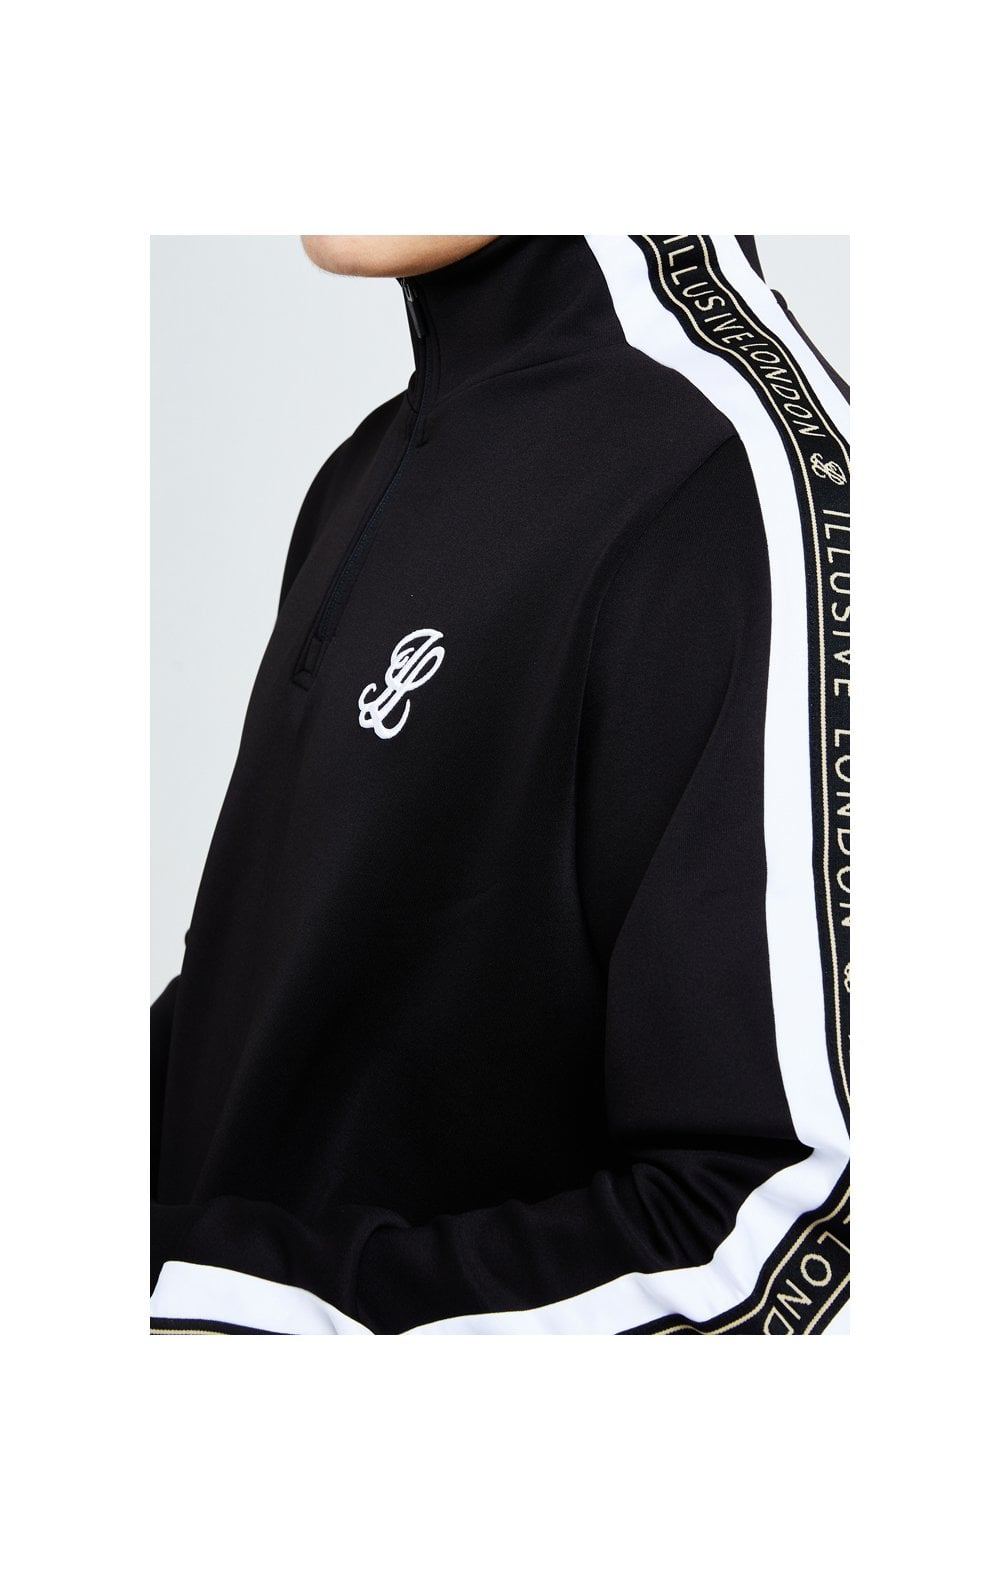 Illusive London Diverge 1/4 Zip Hoodie Black Gold & White (2)